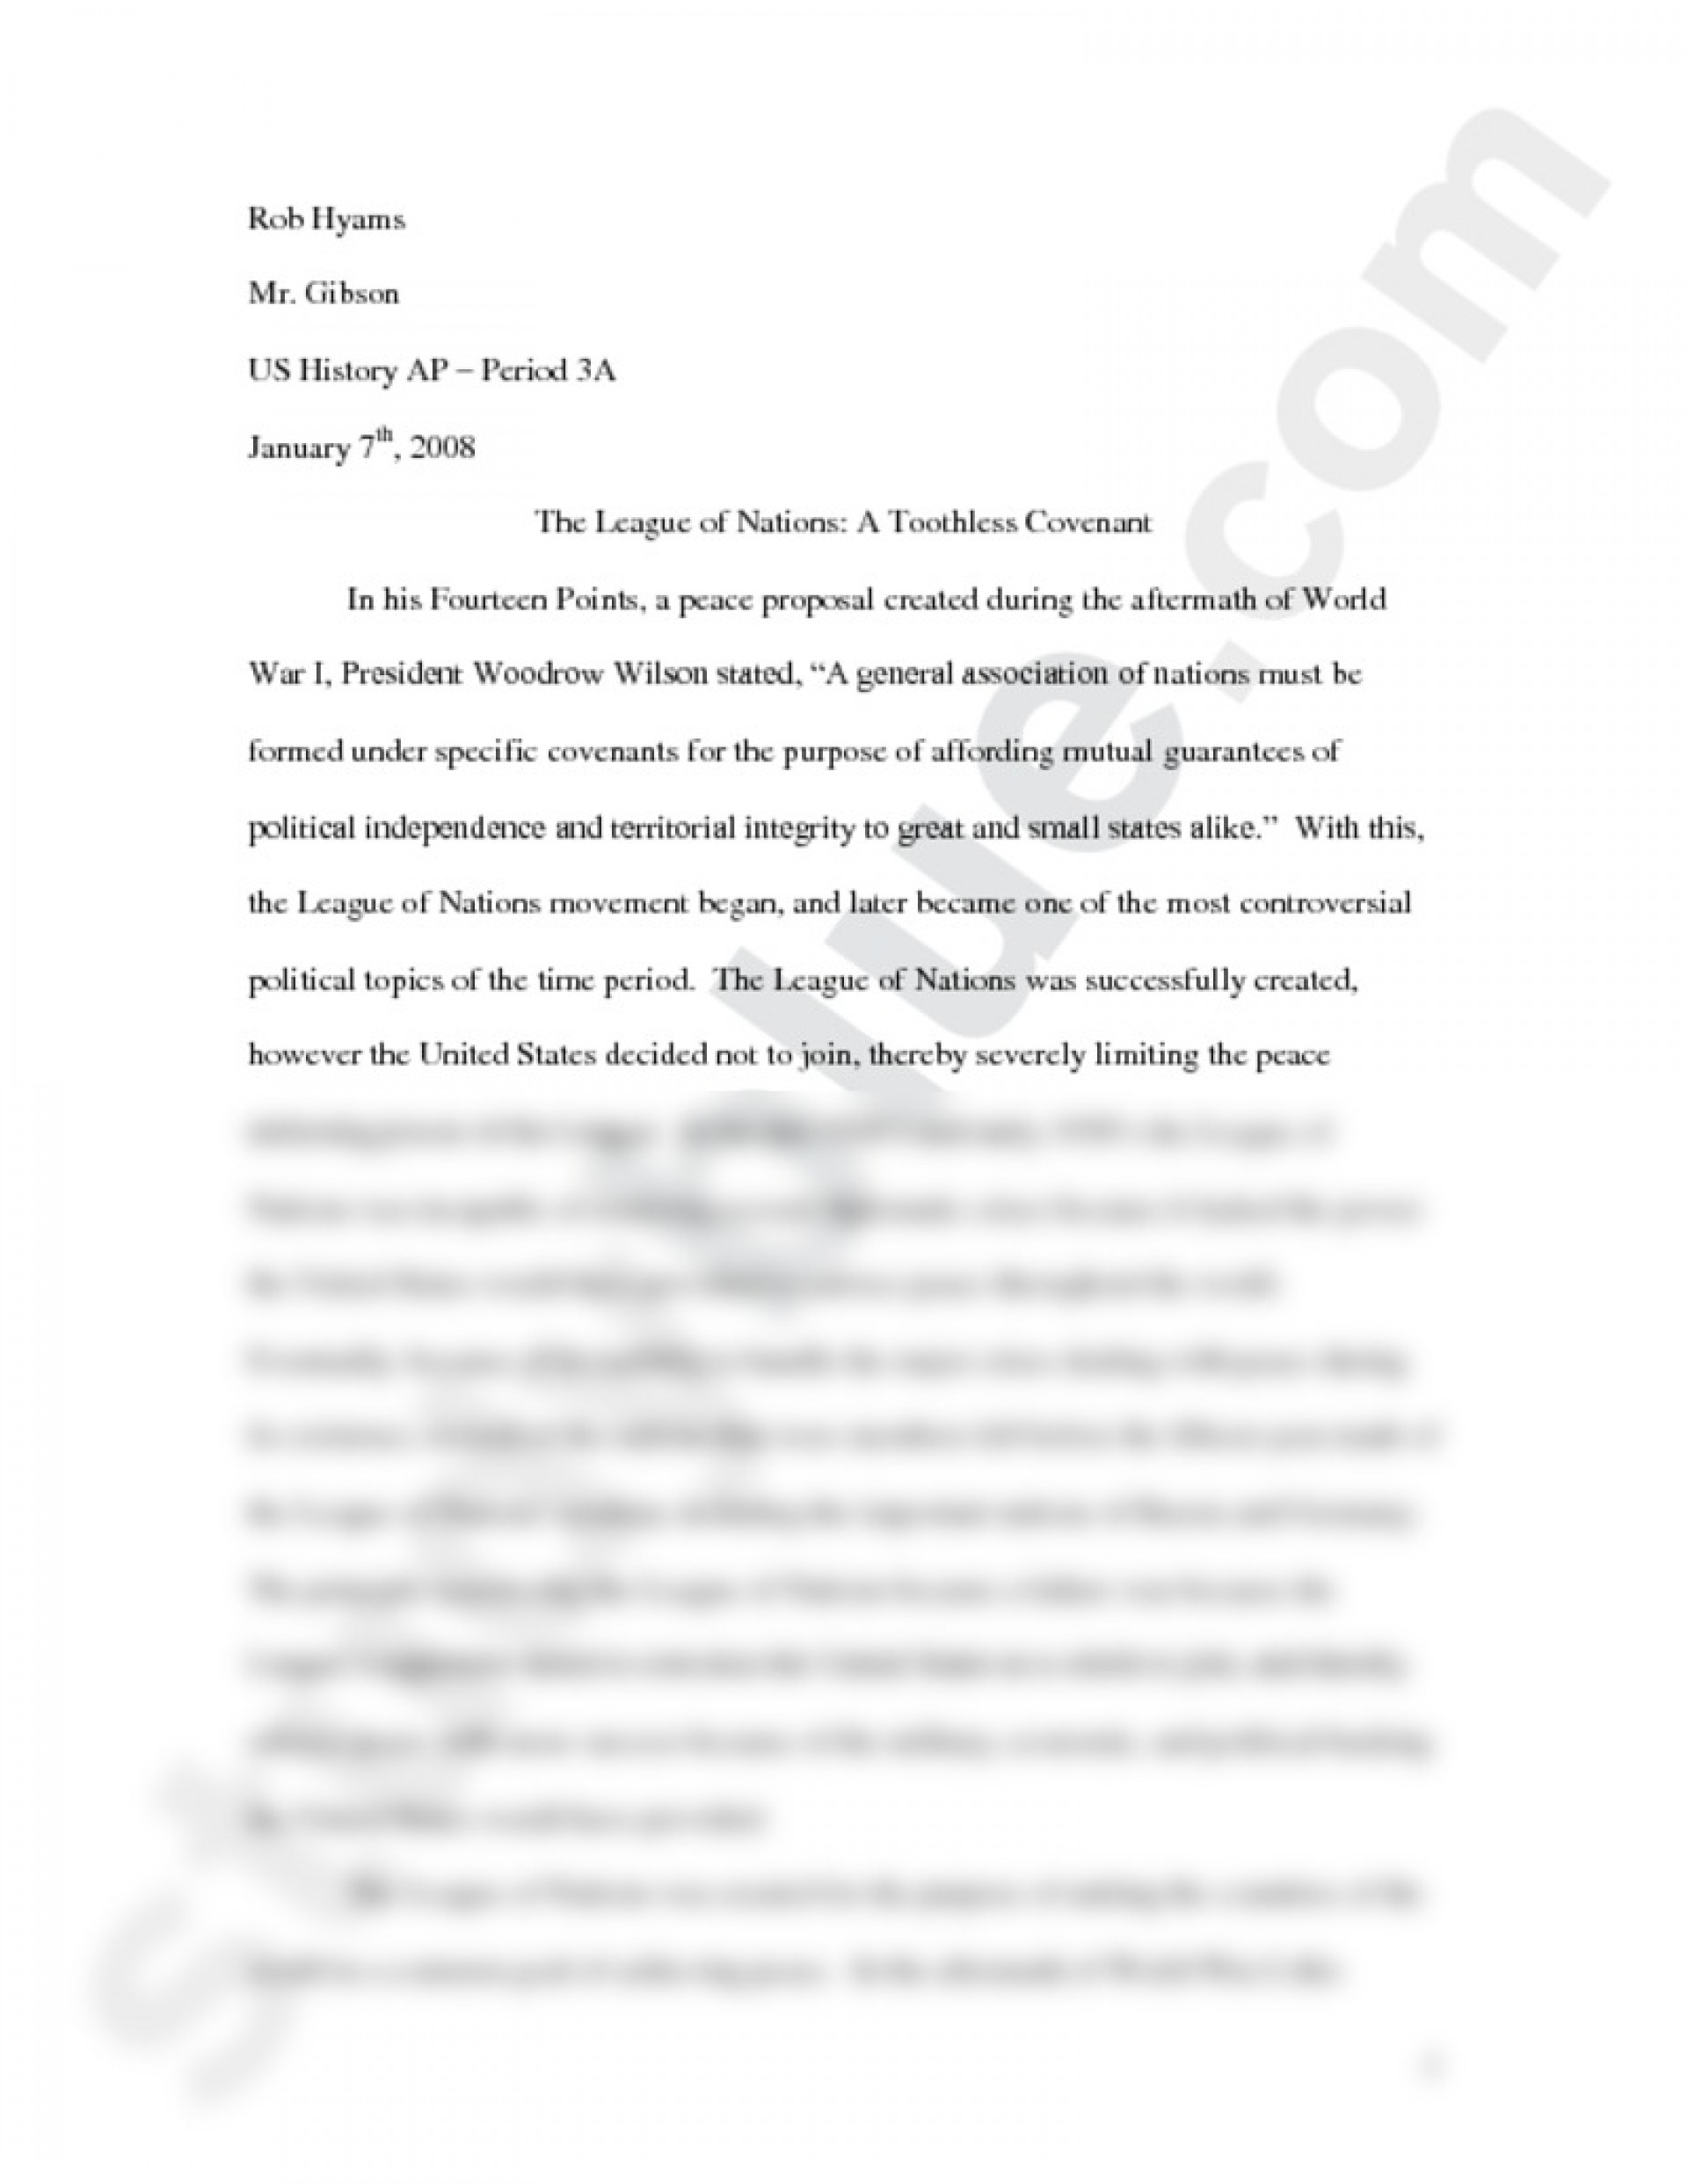 006 Rutgers Essay Preview0 Impressive Clear All Formatting For Transfer Students Examples 1920